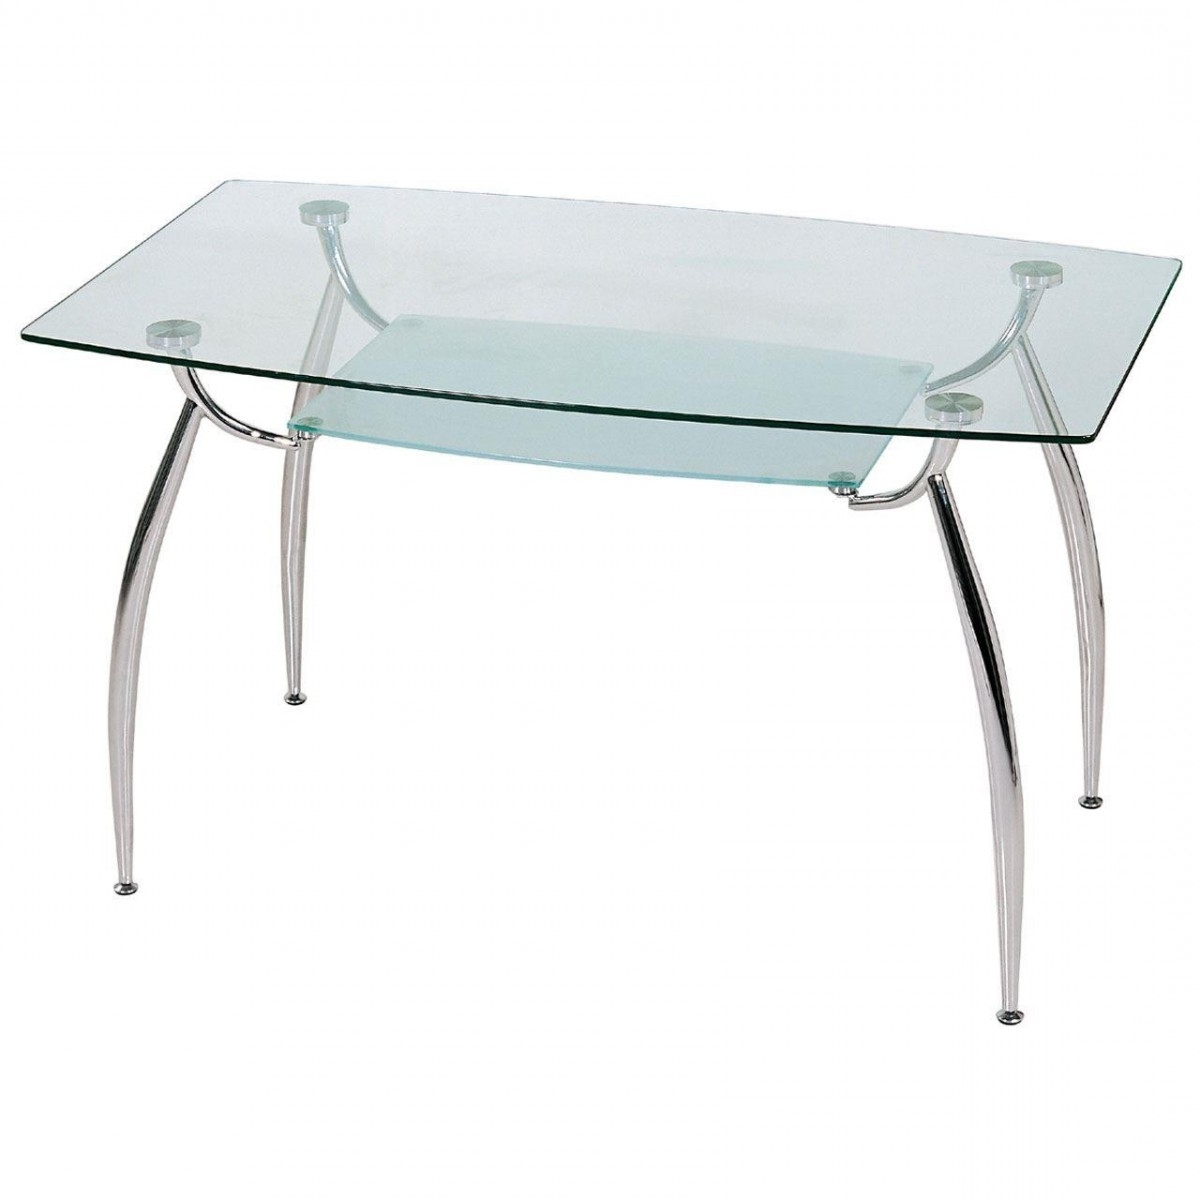 Lazio Dining Tables Regarding Preferred The Modern Home Lazio Dining Table – Clearance – Searchstyle (View 20 of 25)